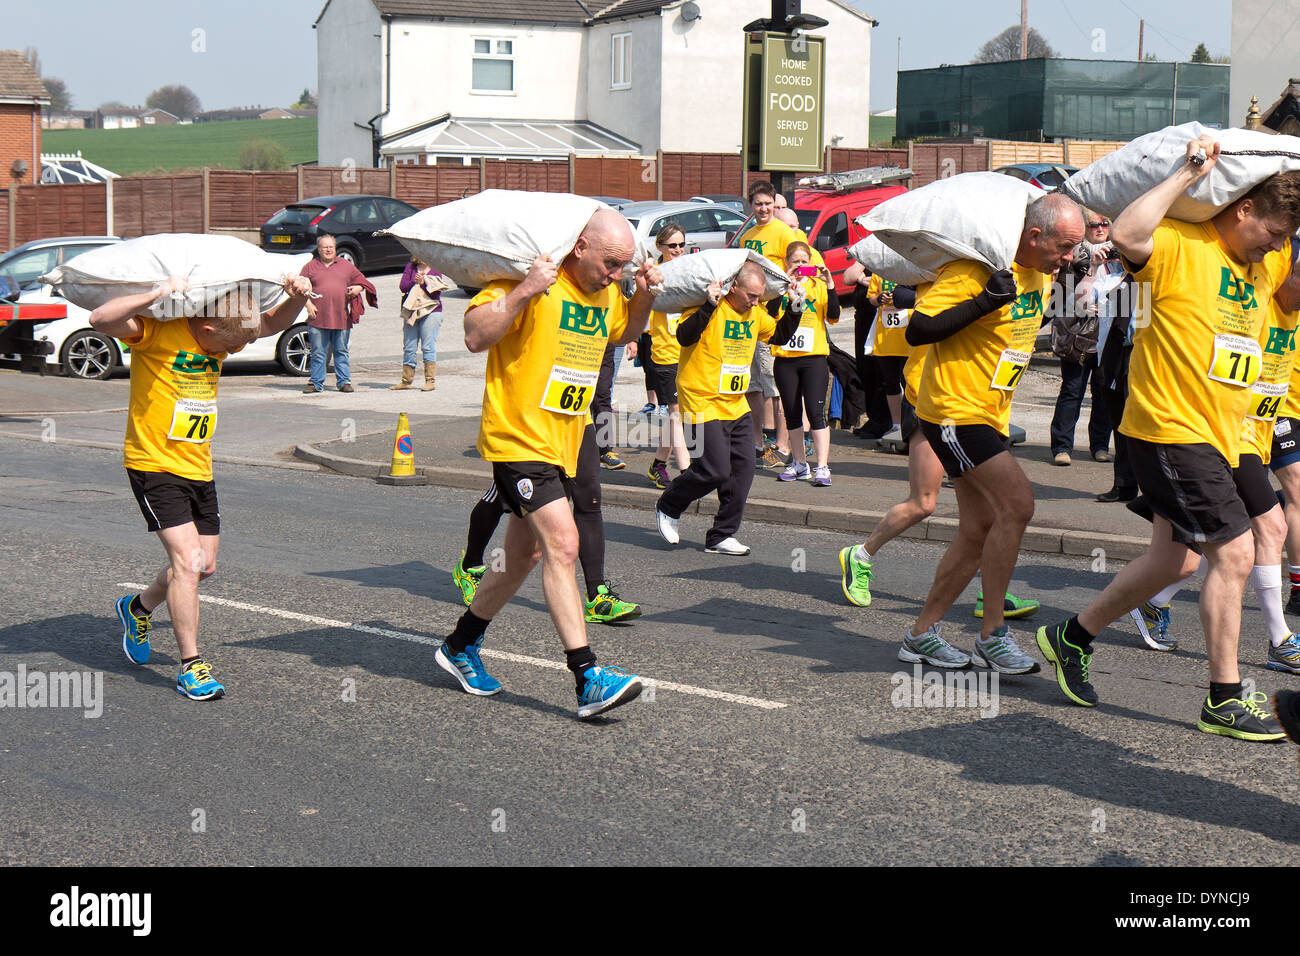 The World Coal Carrying Championship, Gawthorpe, West Yorkshire, Easter Monday 2014.  male contestants at the start of the race - Stock Image